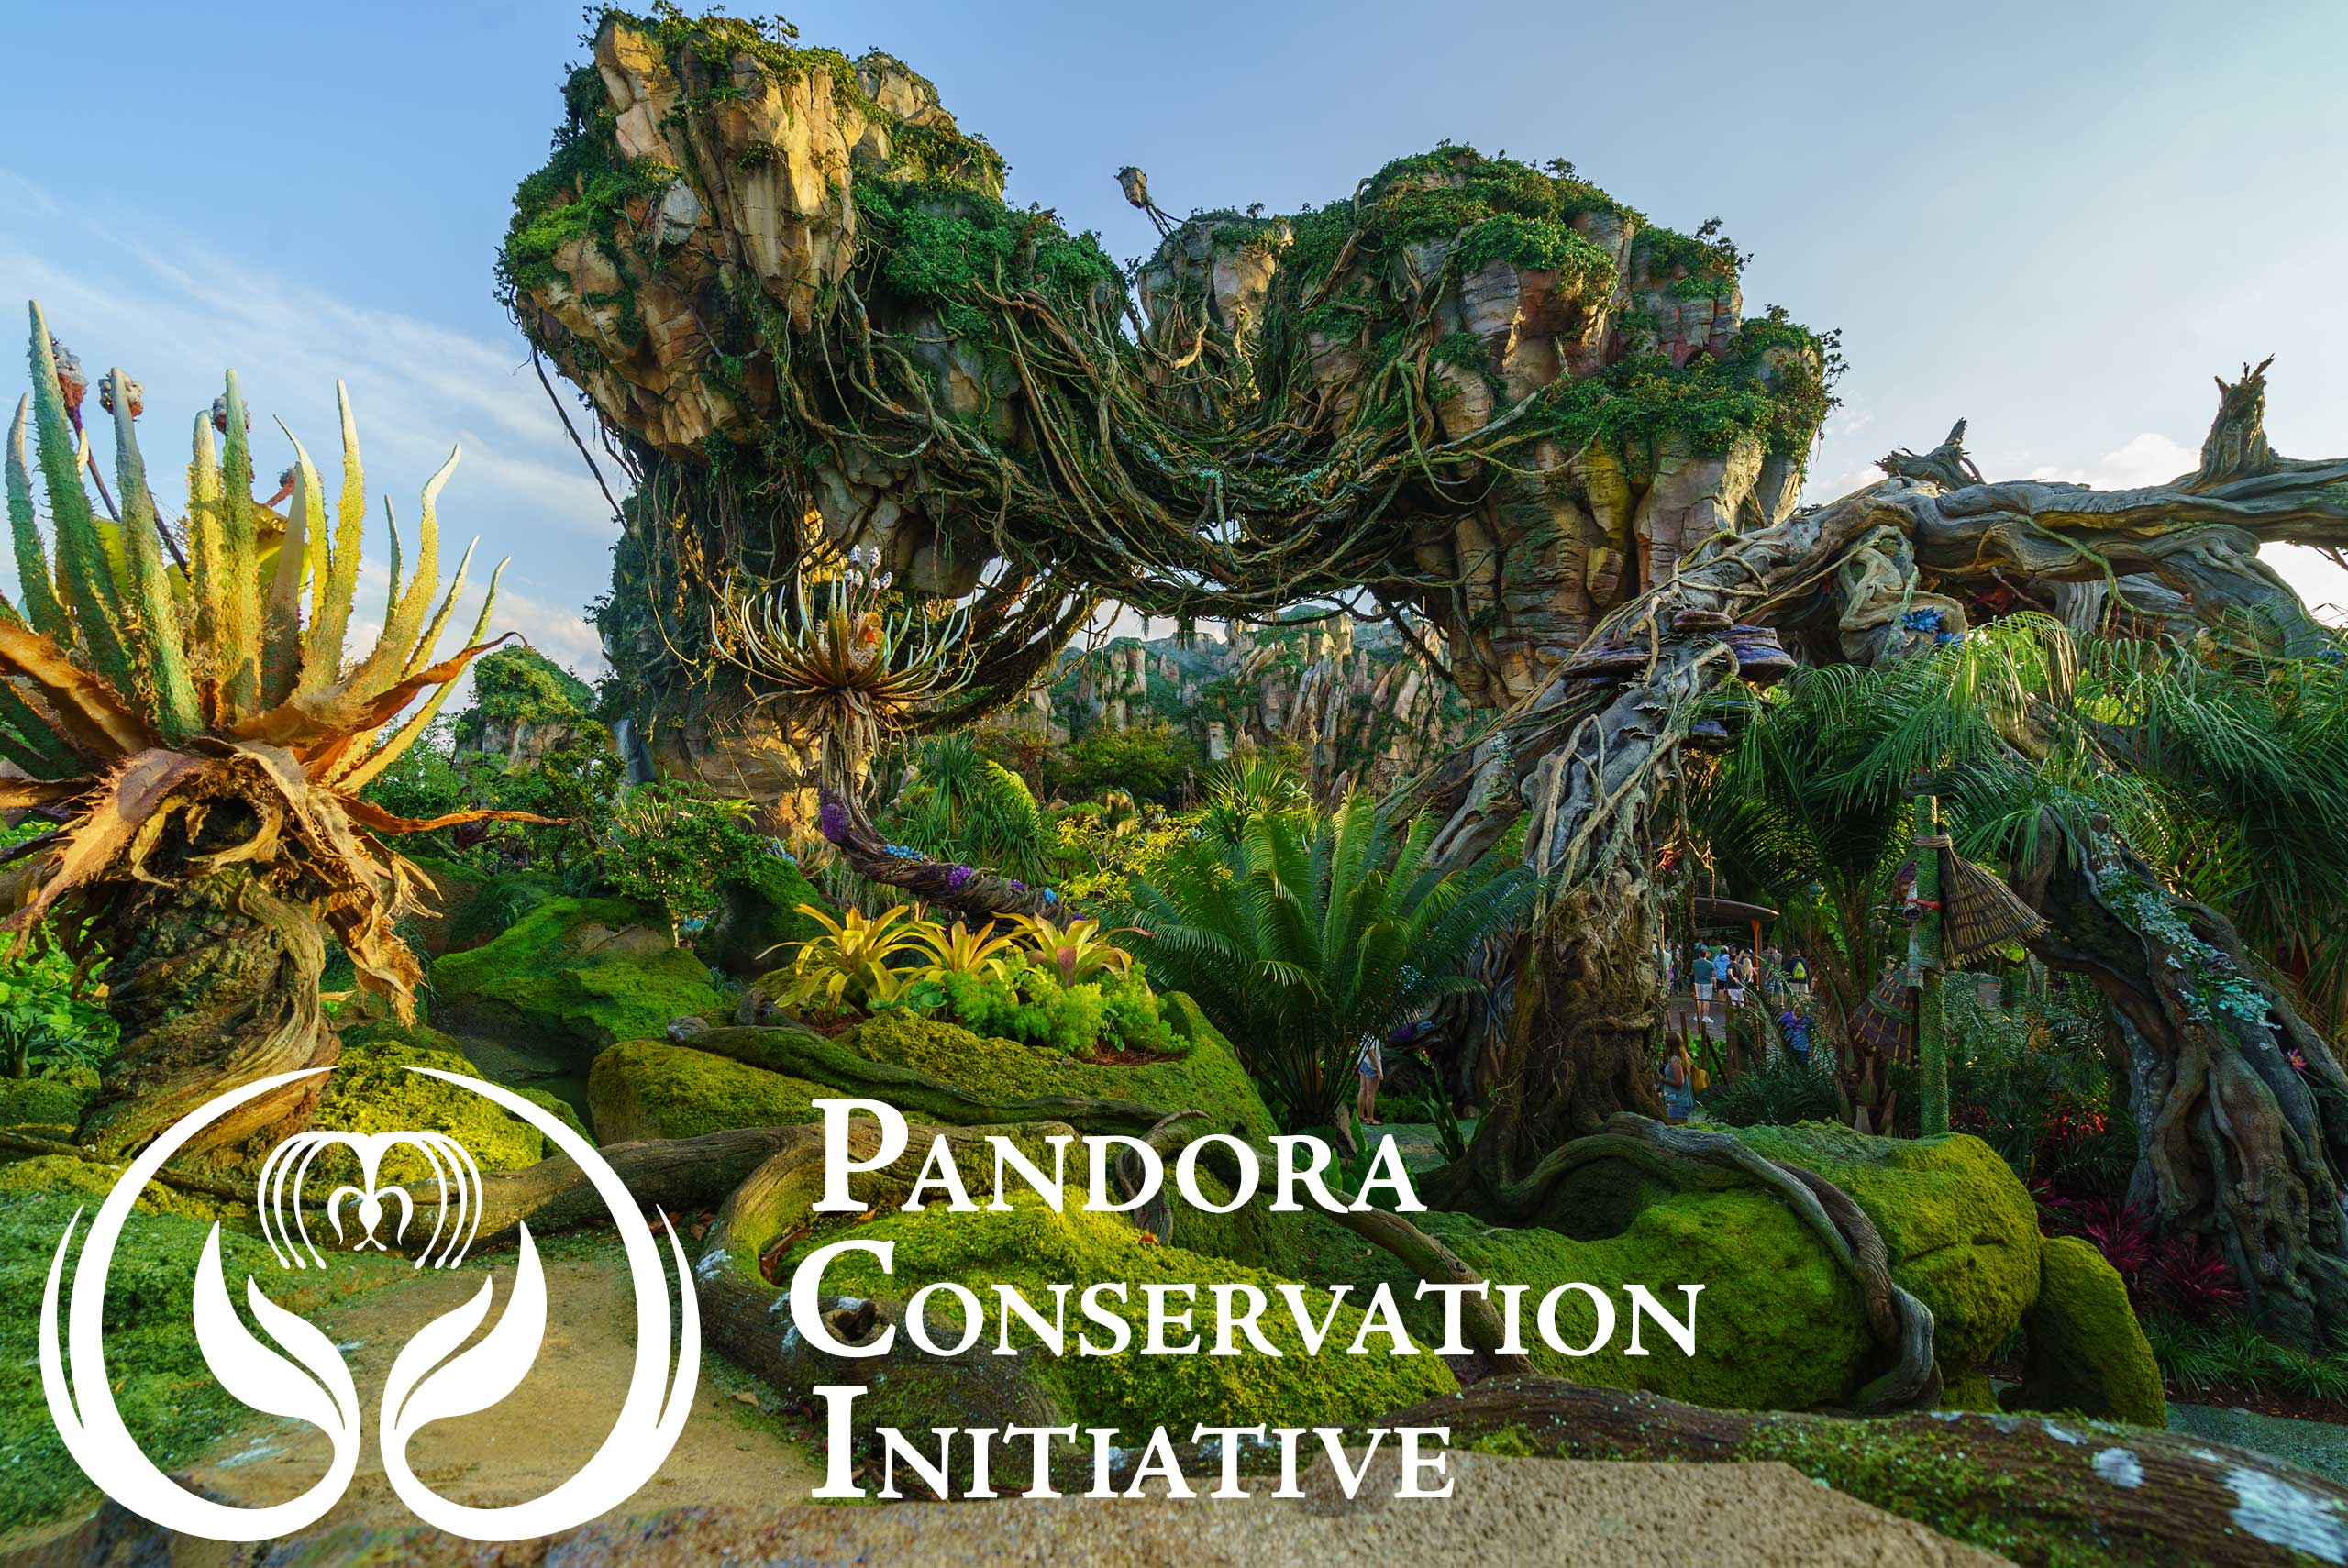 Alpha Centauri Expeditions and The Pandora Conservation Initiative